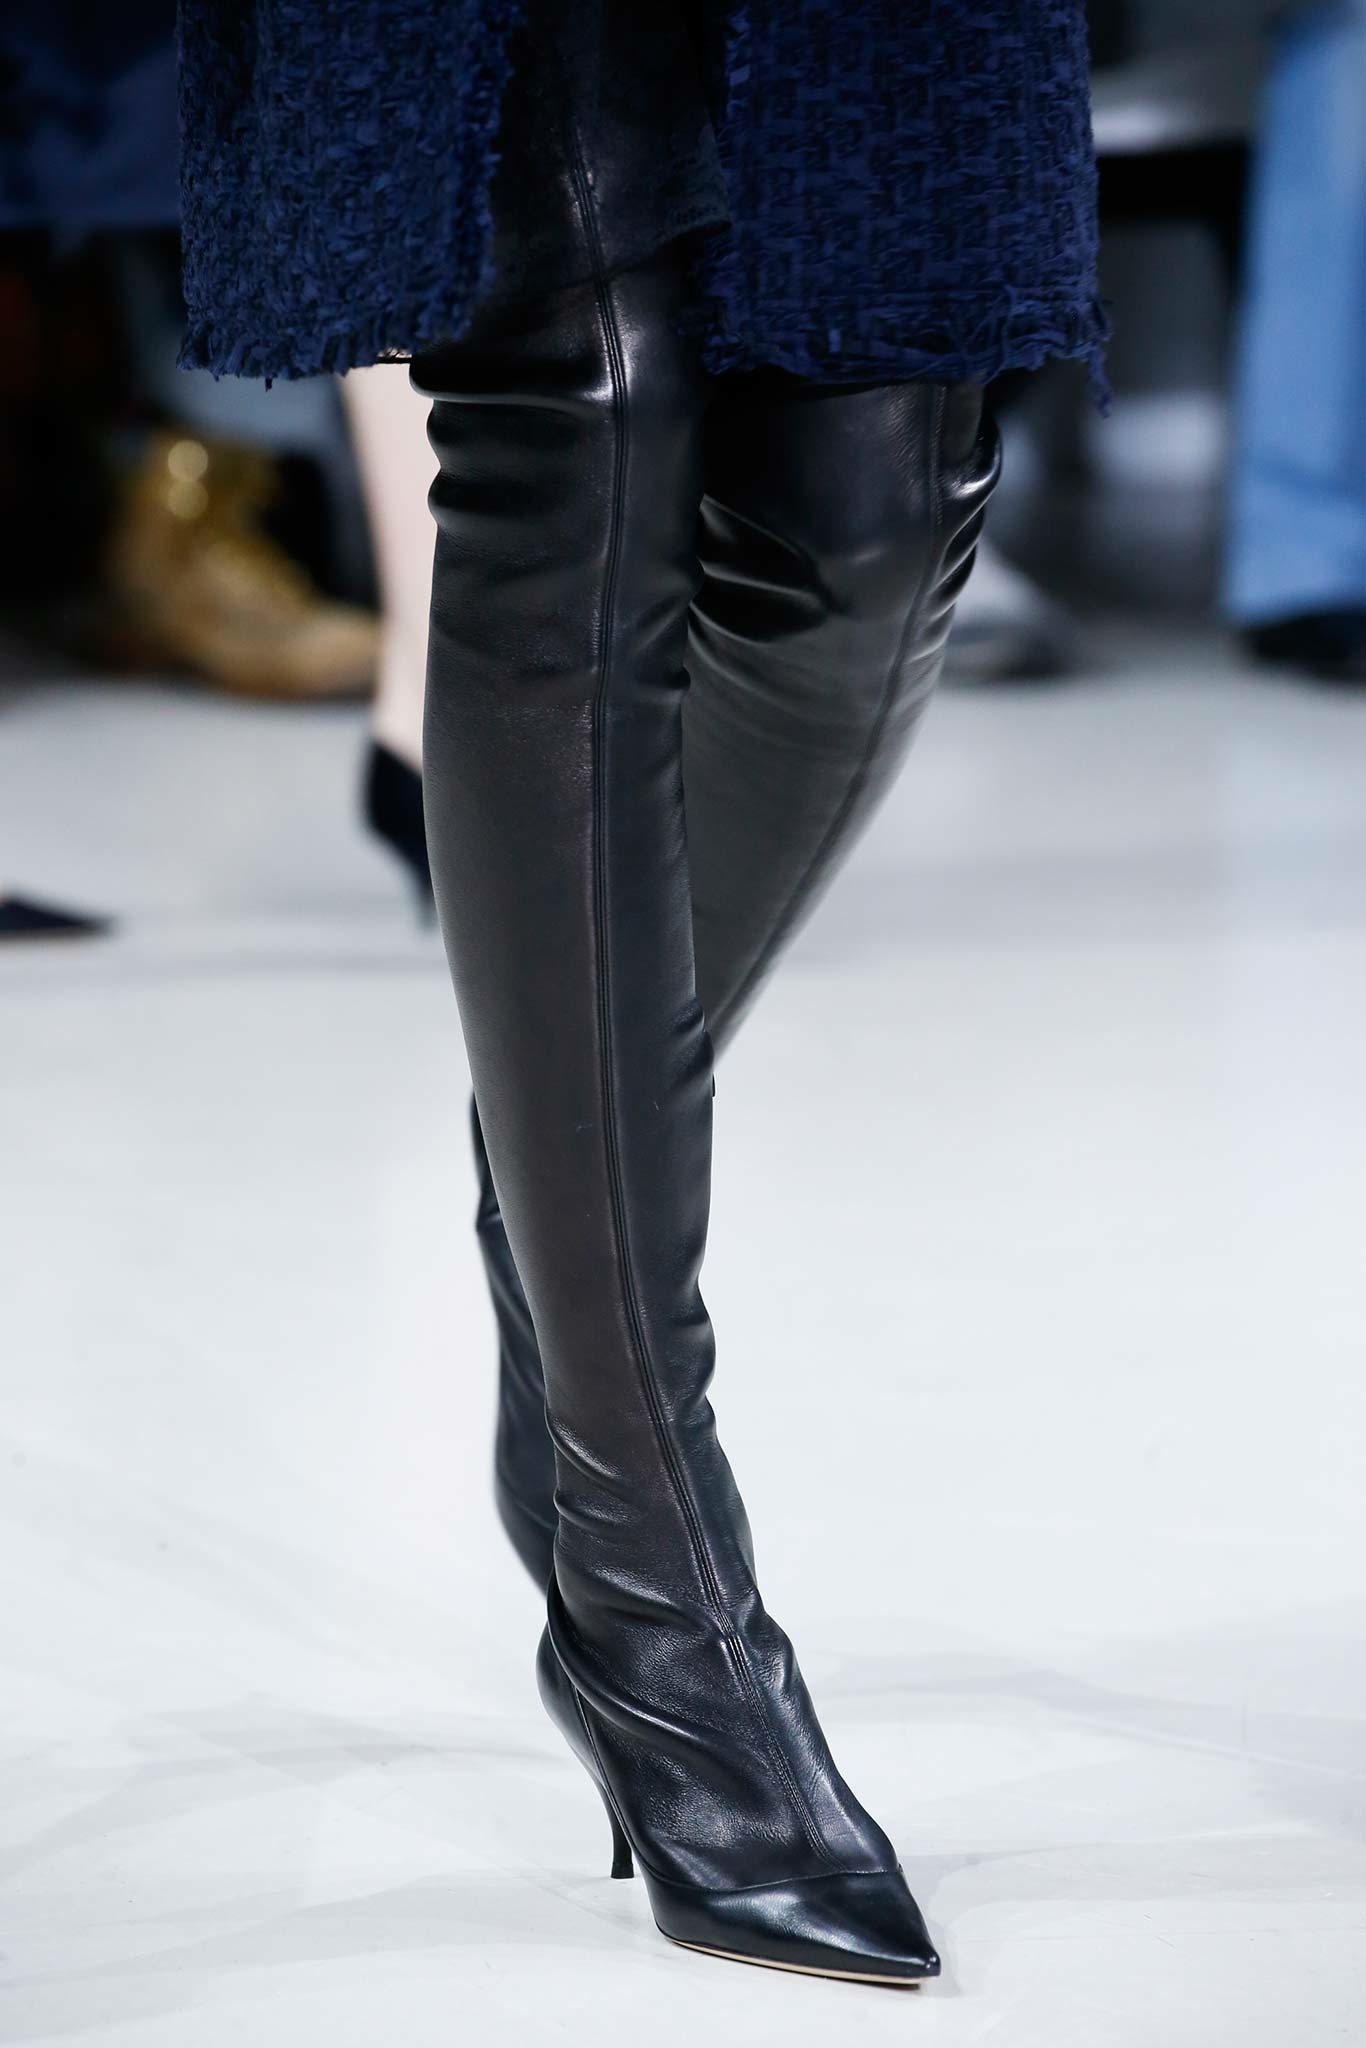 06-05-accessories-trends-fall-2015-thigh-high-boots.jpg